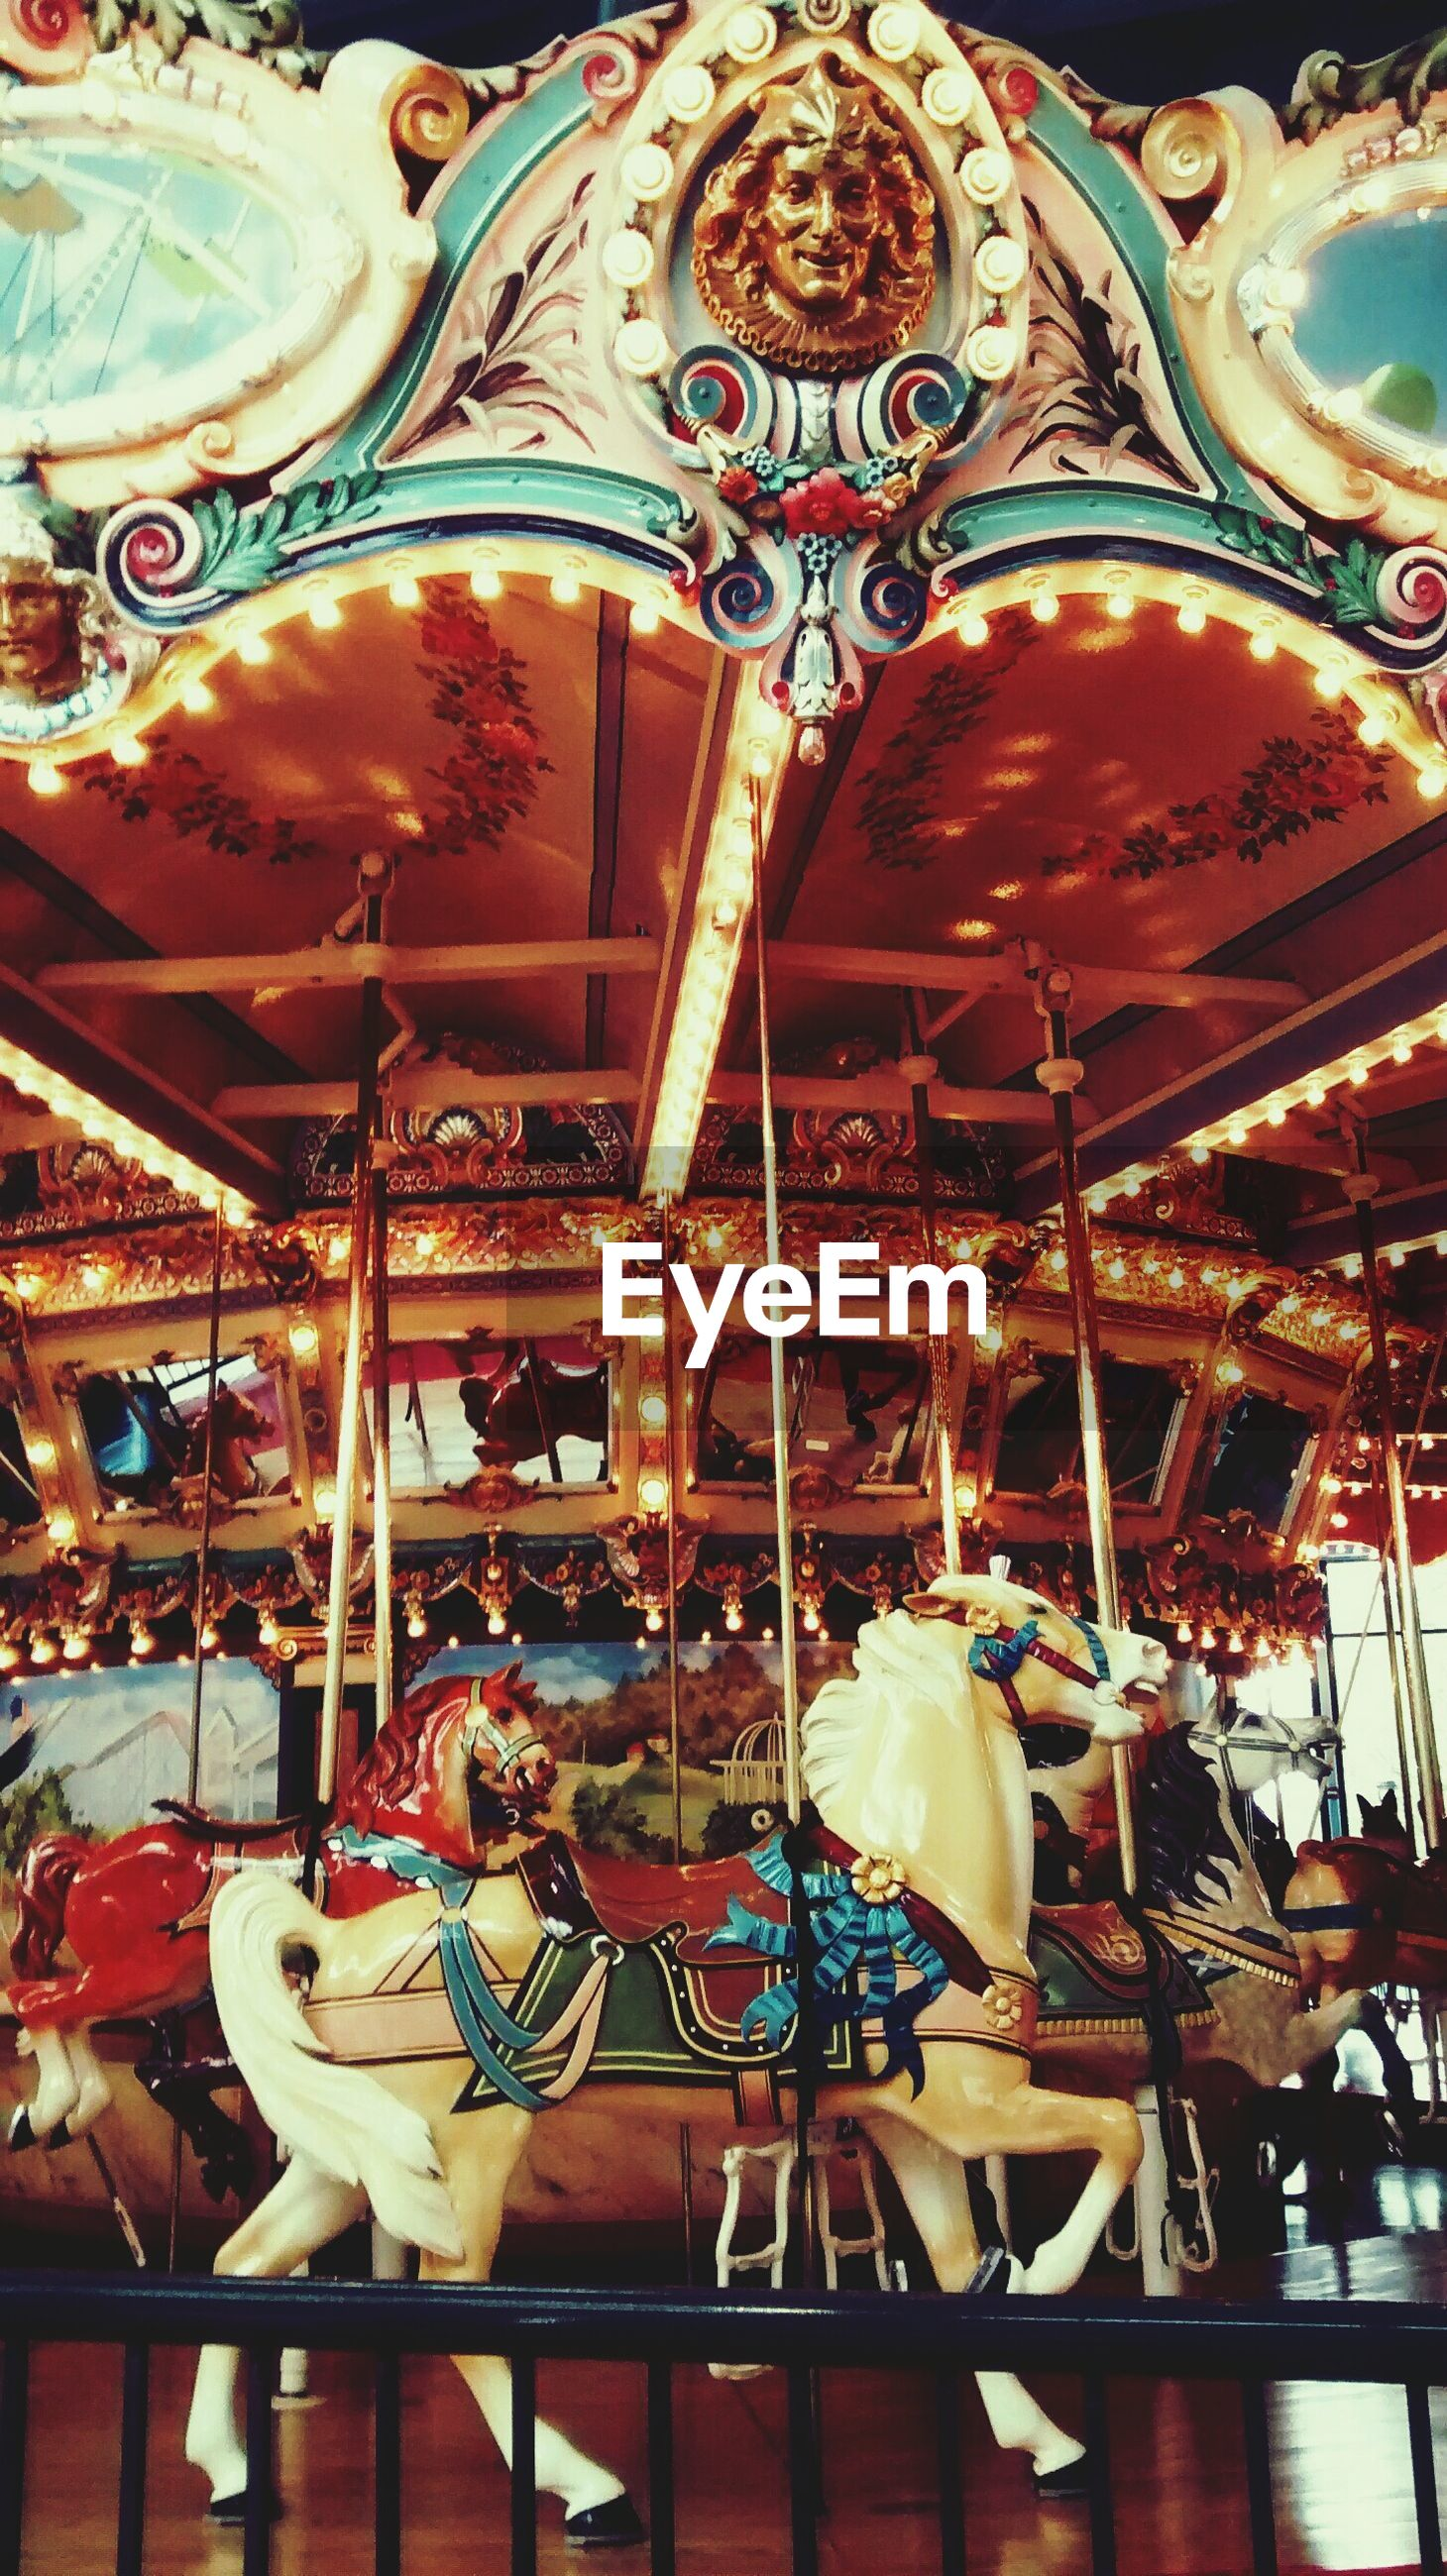 amusement park, art and craft, art, amusement park ride, indoors, creativity, arts culture and entertainment, carousel, decoration, tradition, animal representation, low angle view, retail, cultures, hanging, incidental people, multi colored, built structure, large group of objects, human representation